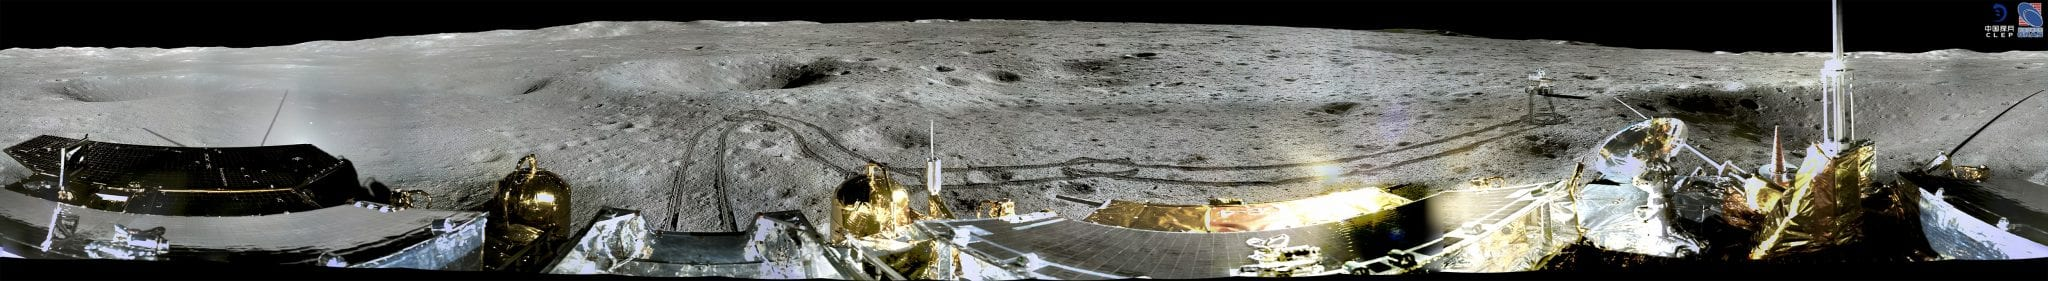 A 360-degree circular shot panorama from the far side of the Moon. Credit: CLEP/ Lunar and Planetary Multimedia Database